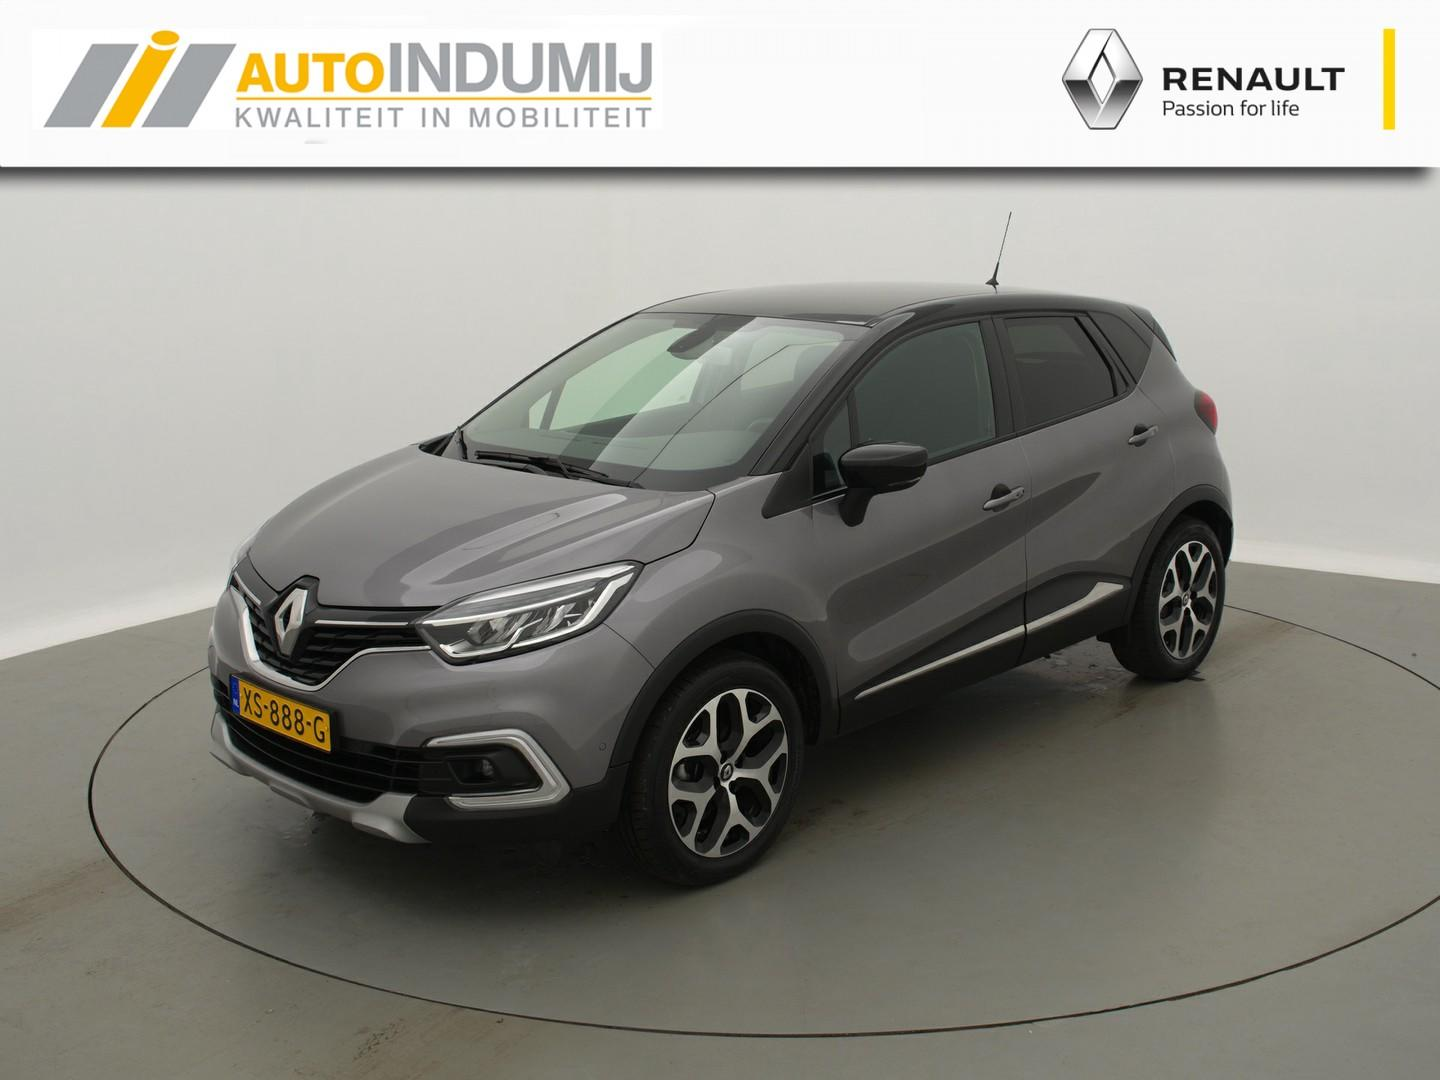 Renault Captur Tce 90 intens / easy life pack!